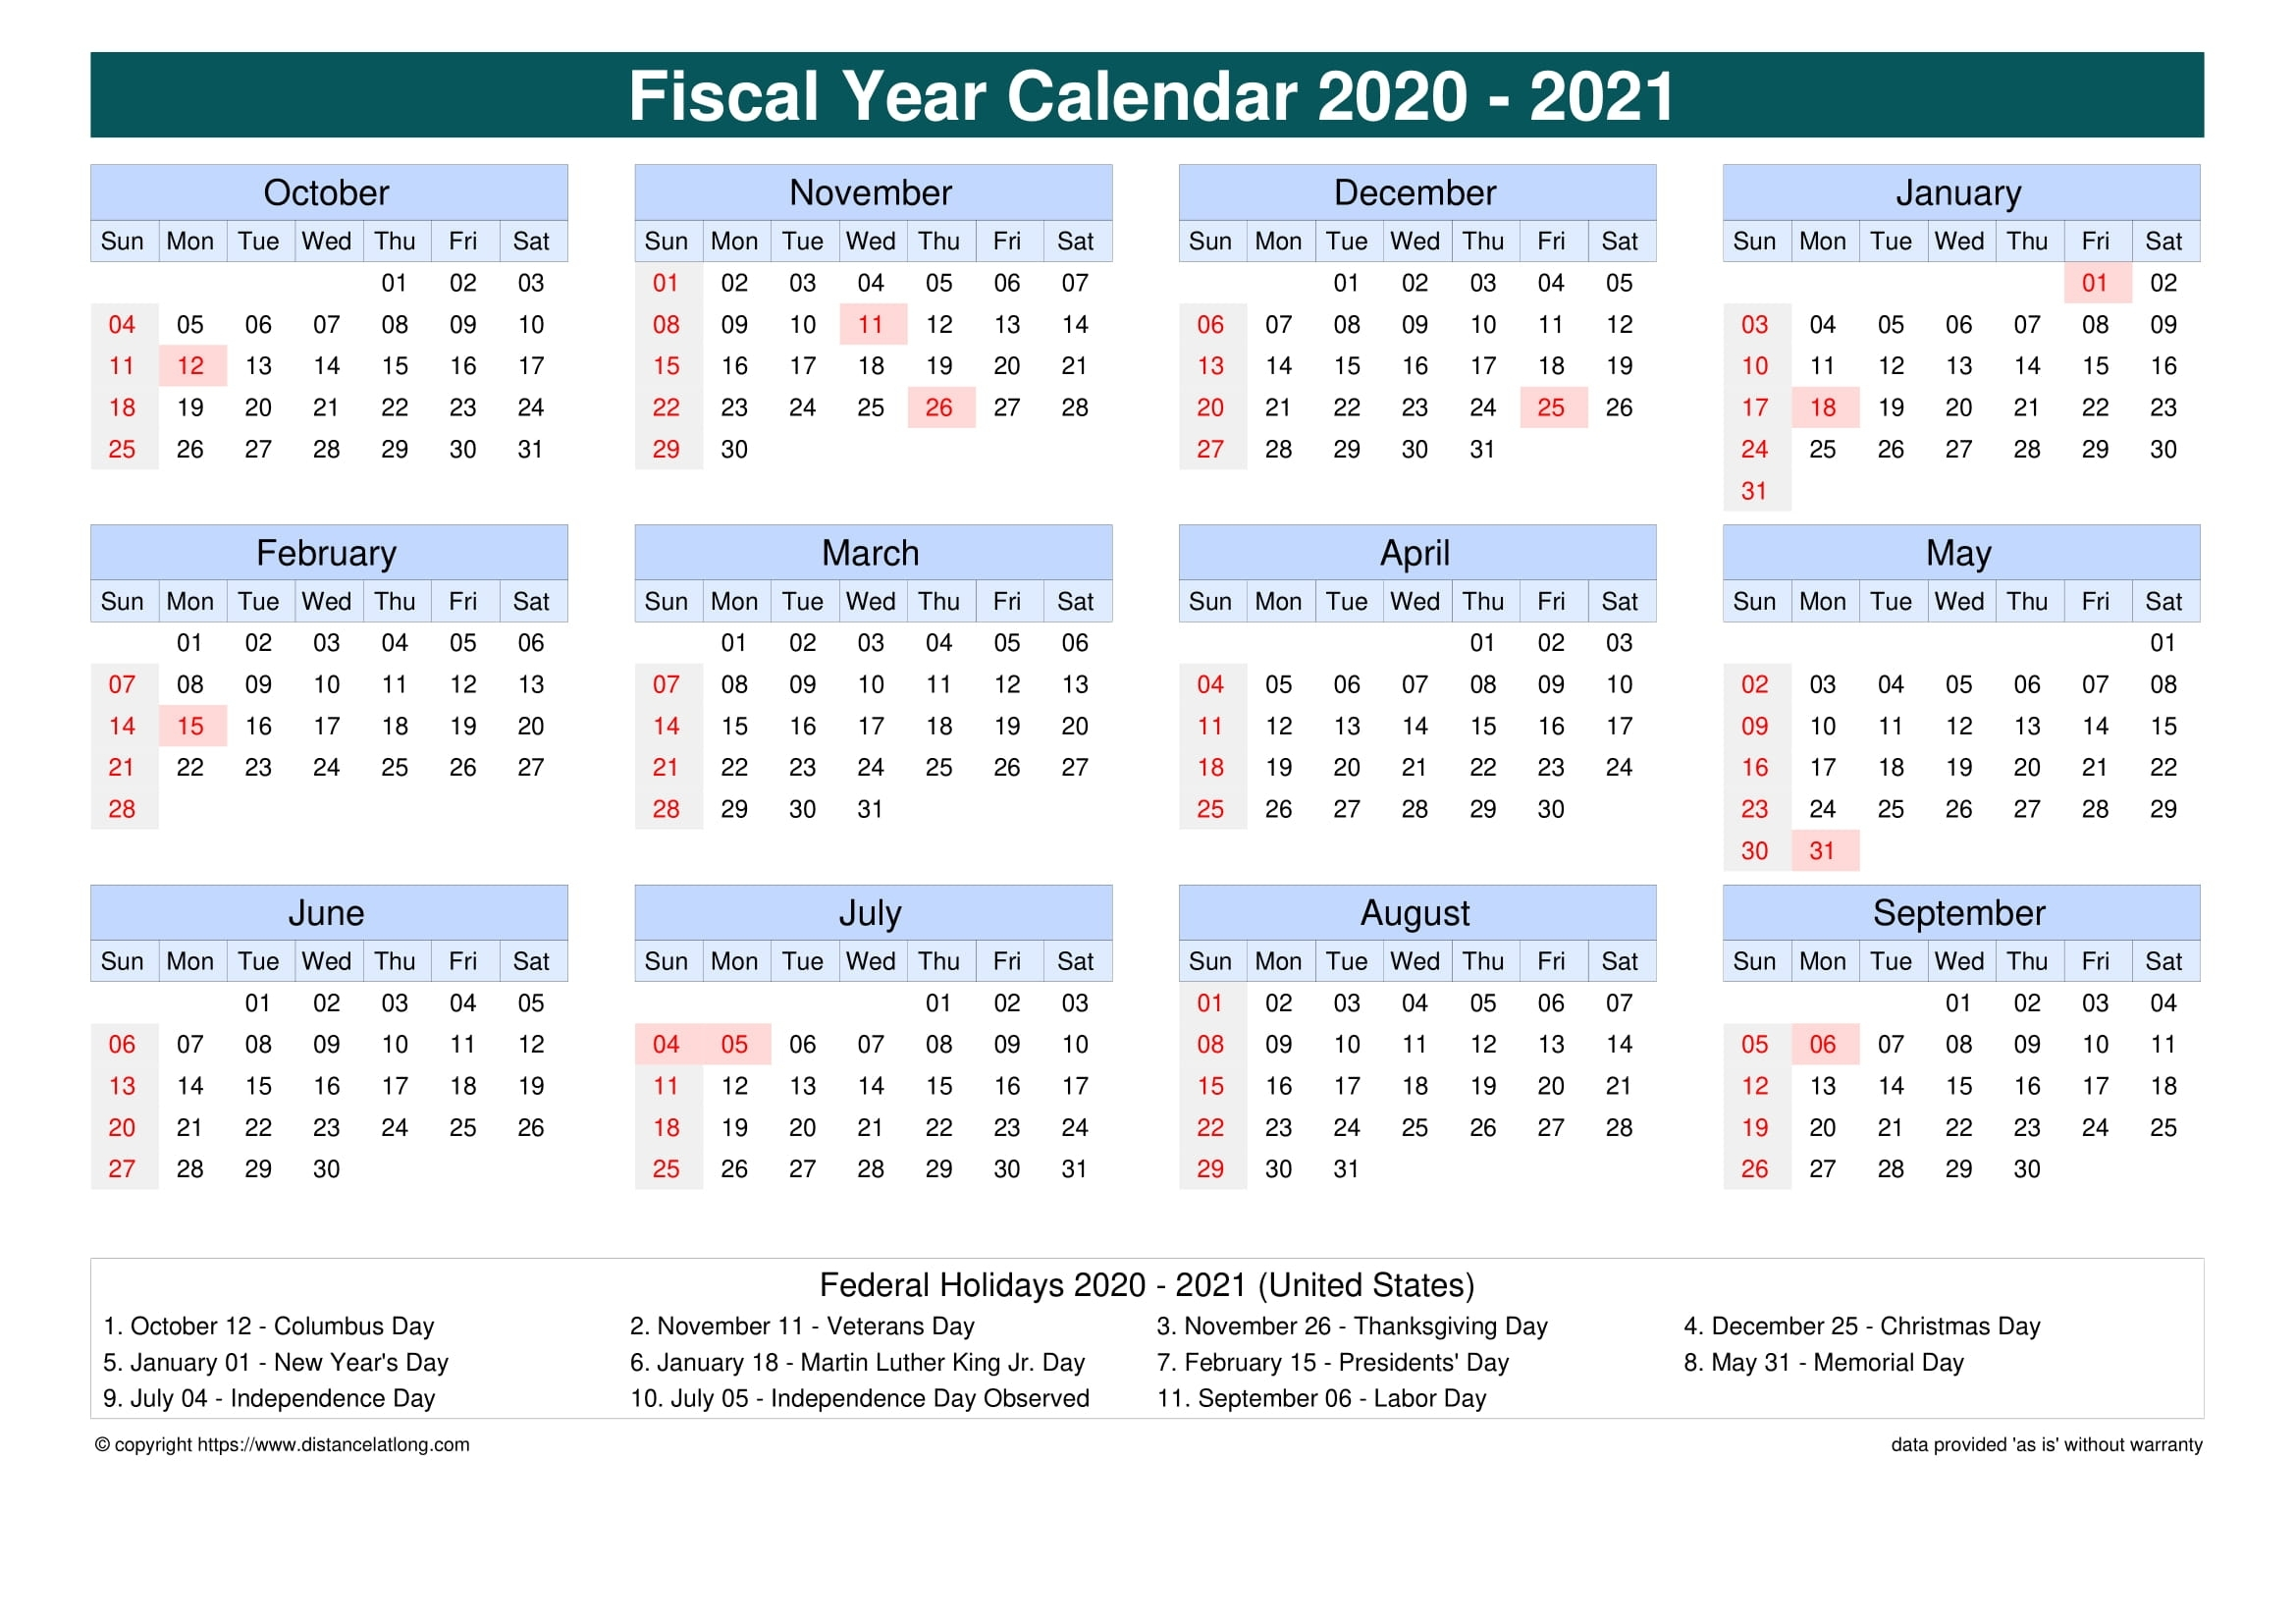 Catch 2021 Calendar Financial With Week Number